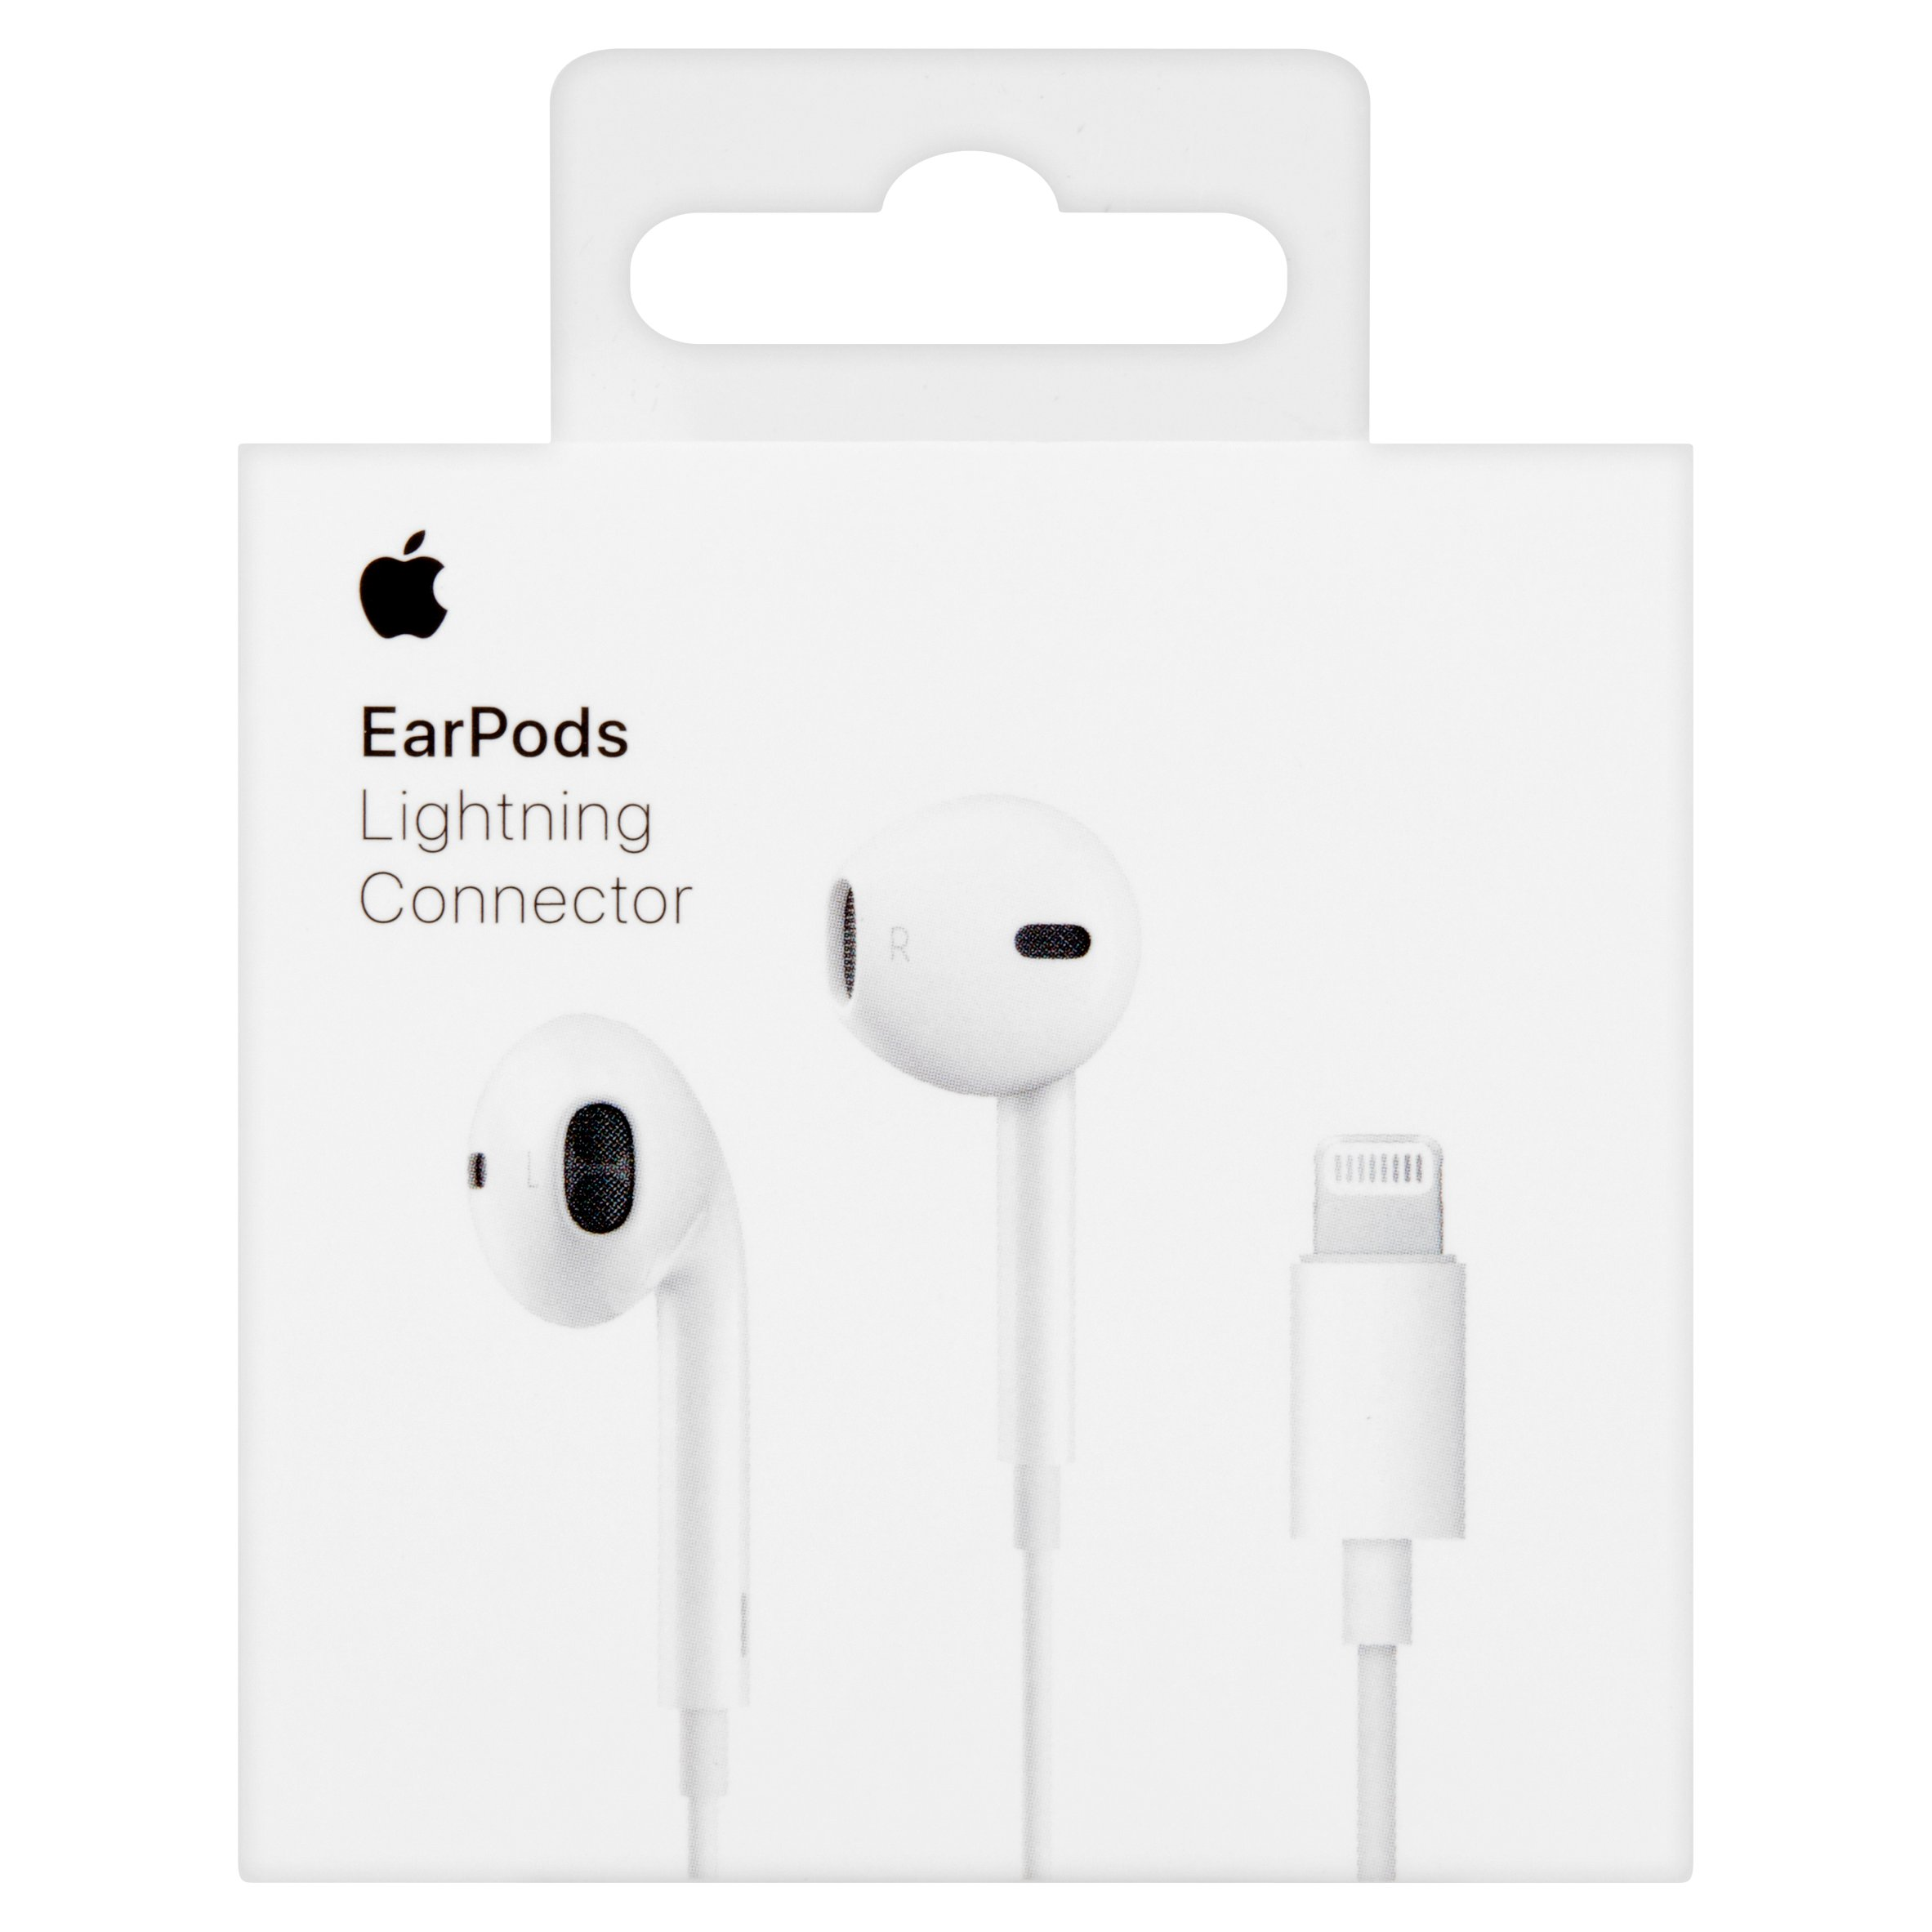 Earbuds apple adapter - apple earbuds for iphone 5